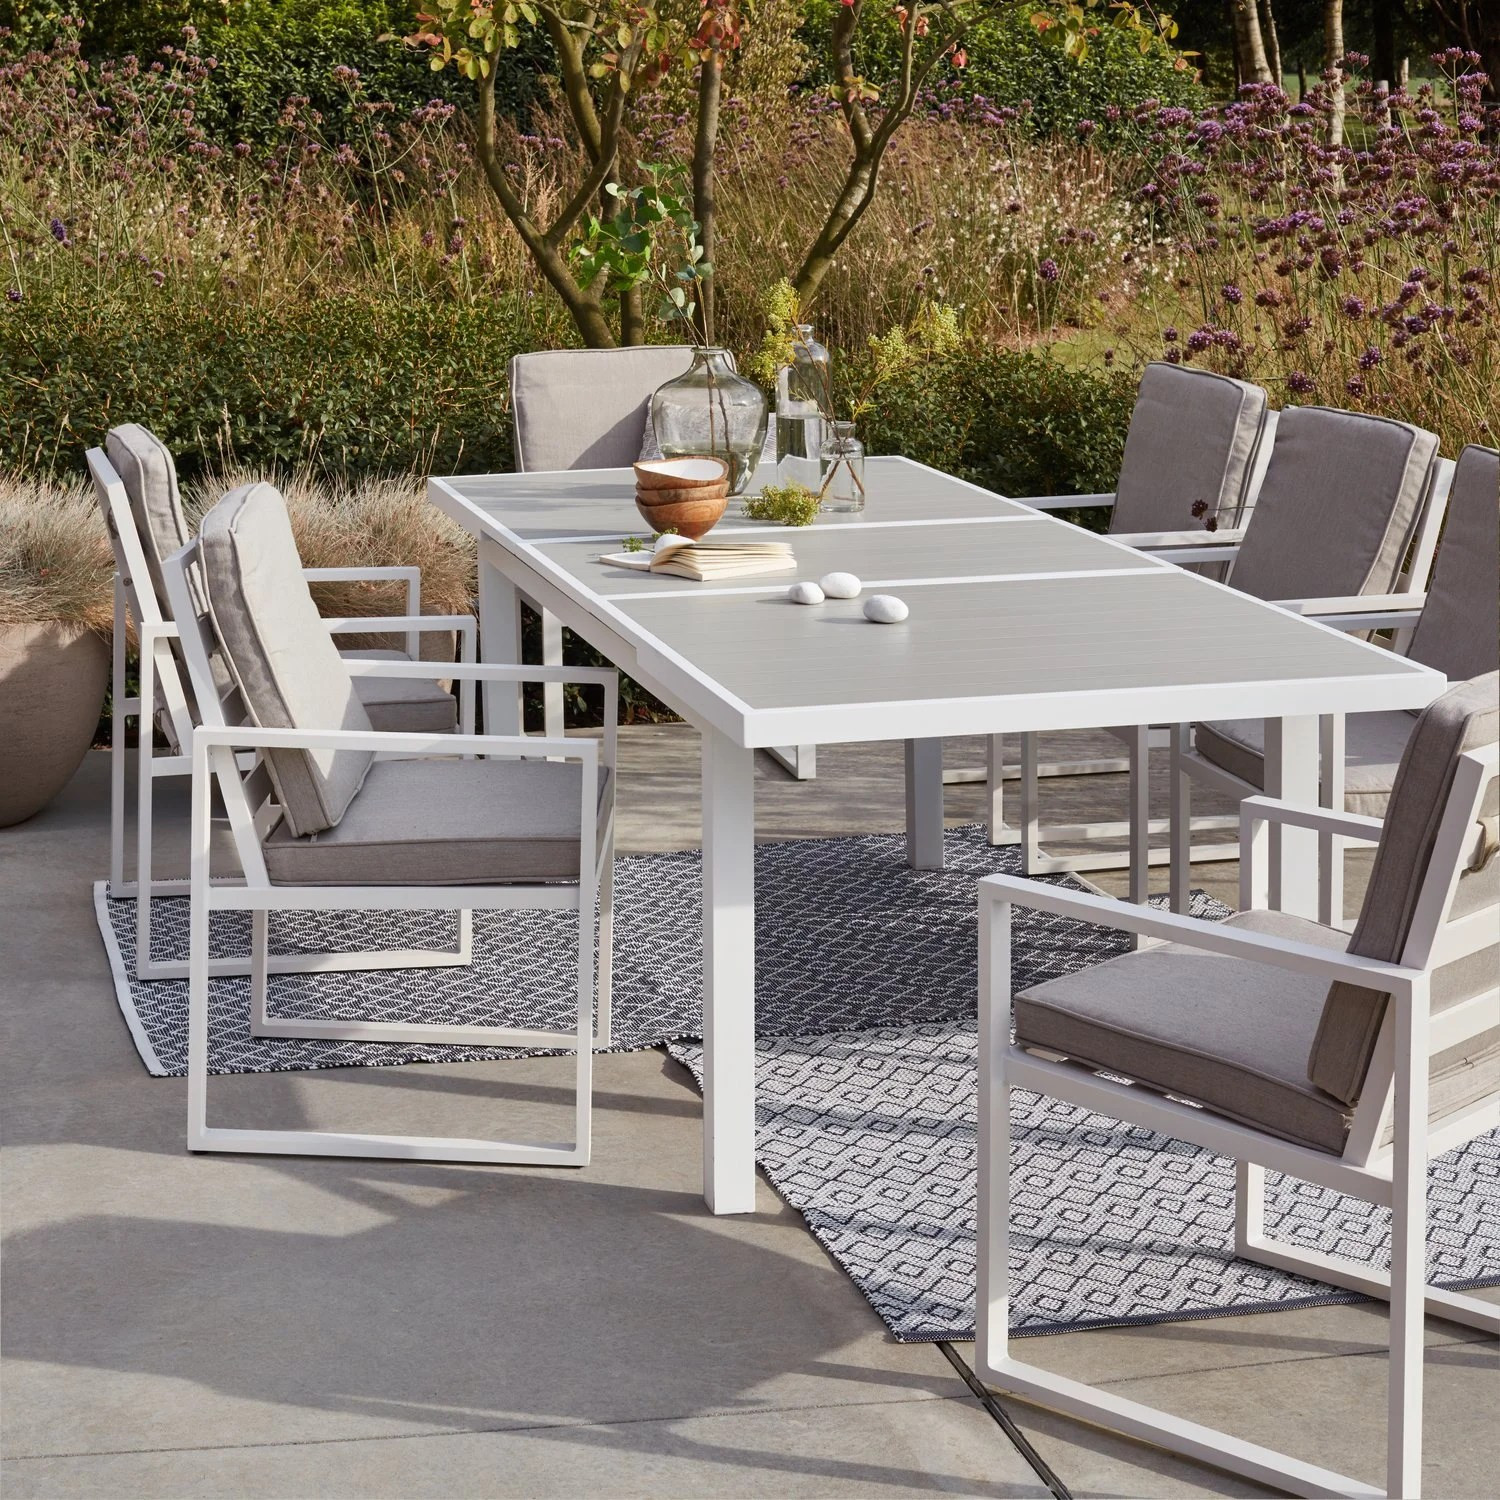 Table De Jardin Fer Ancienne La Nouvelle Collection De Salon De Jardin 2019 Leroy Merlin